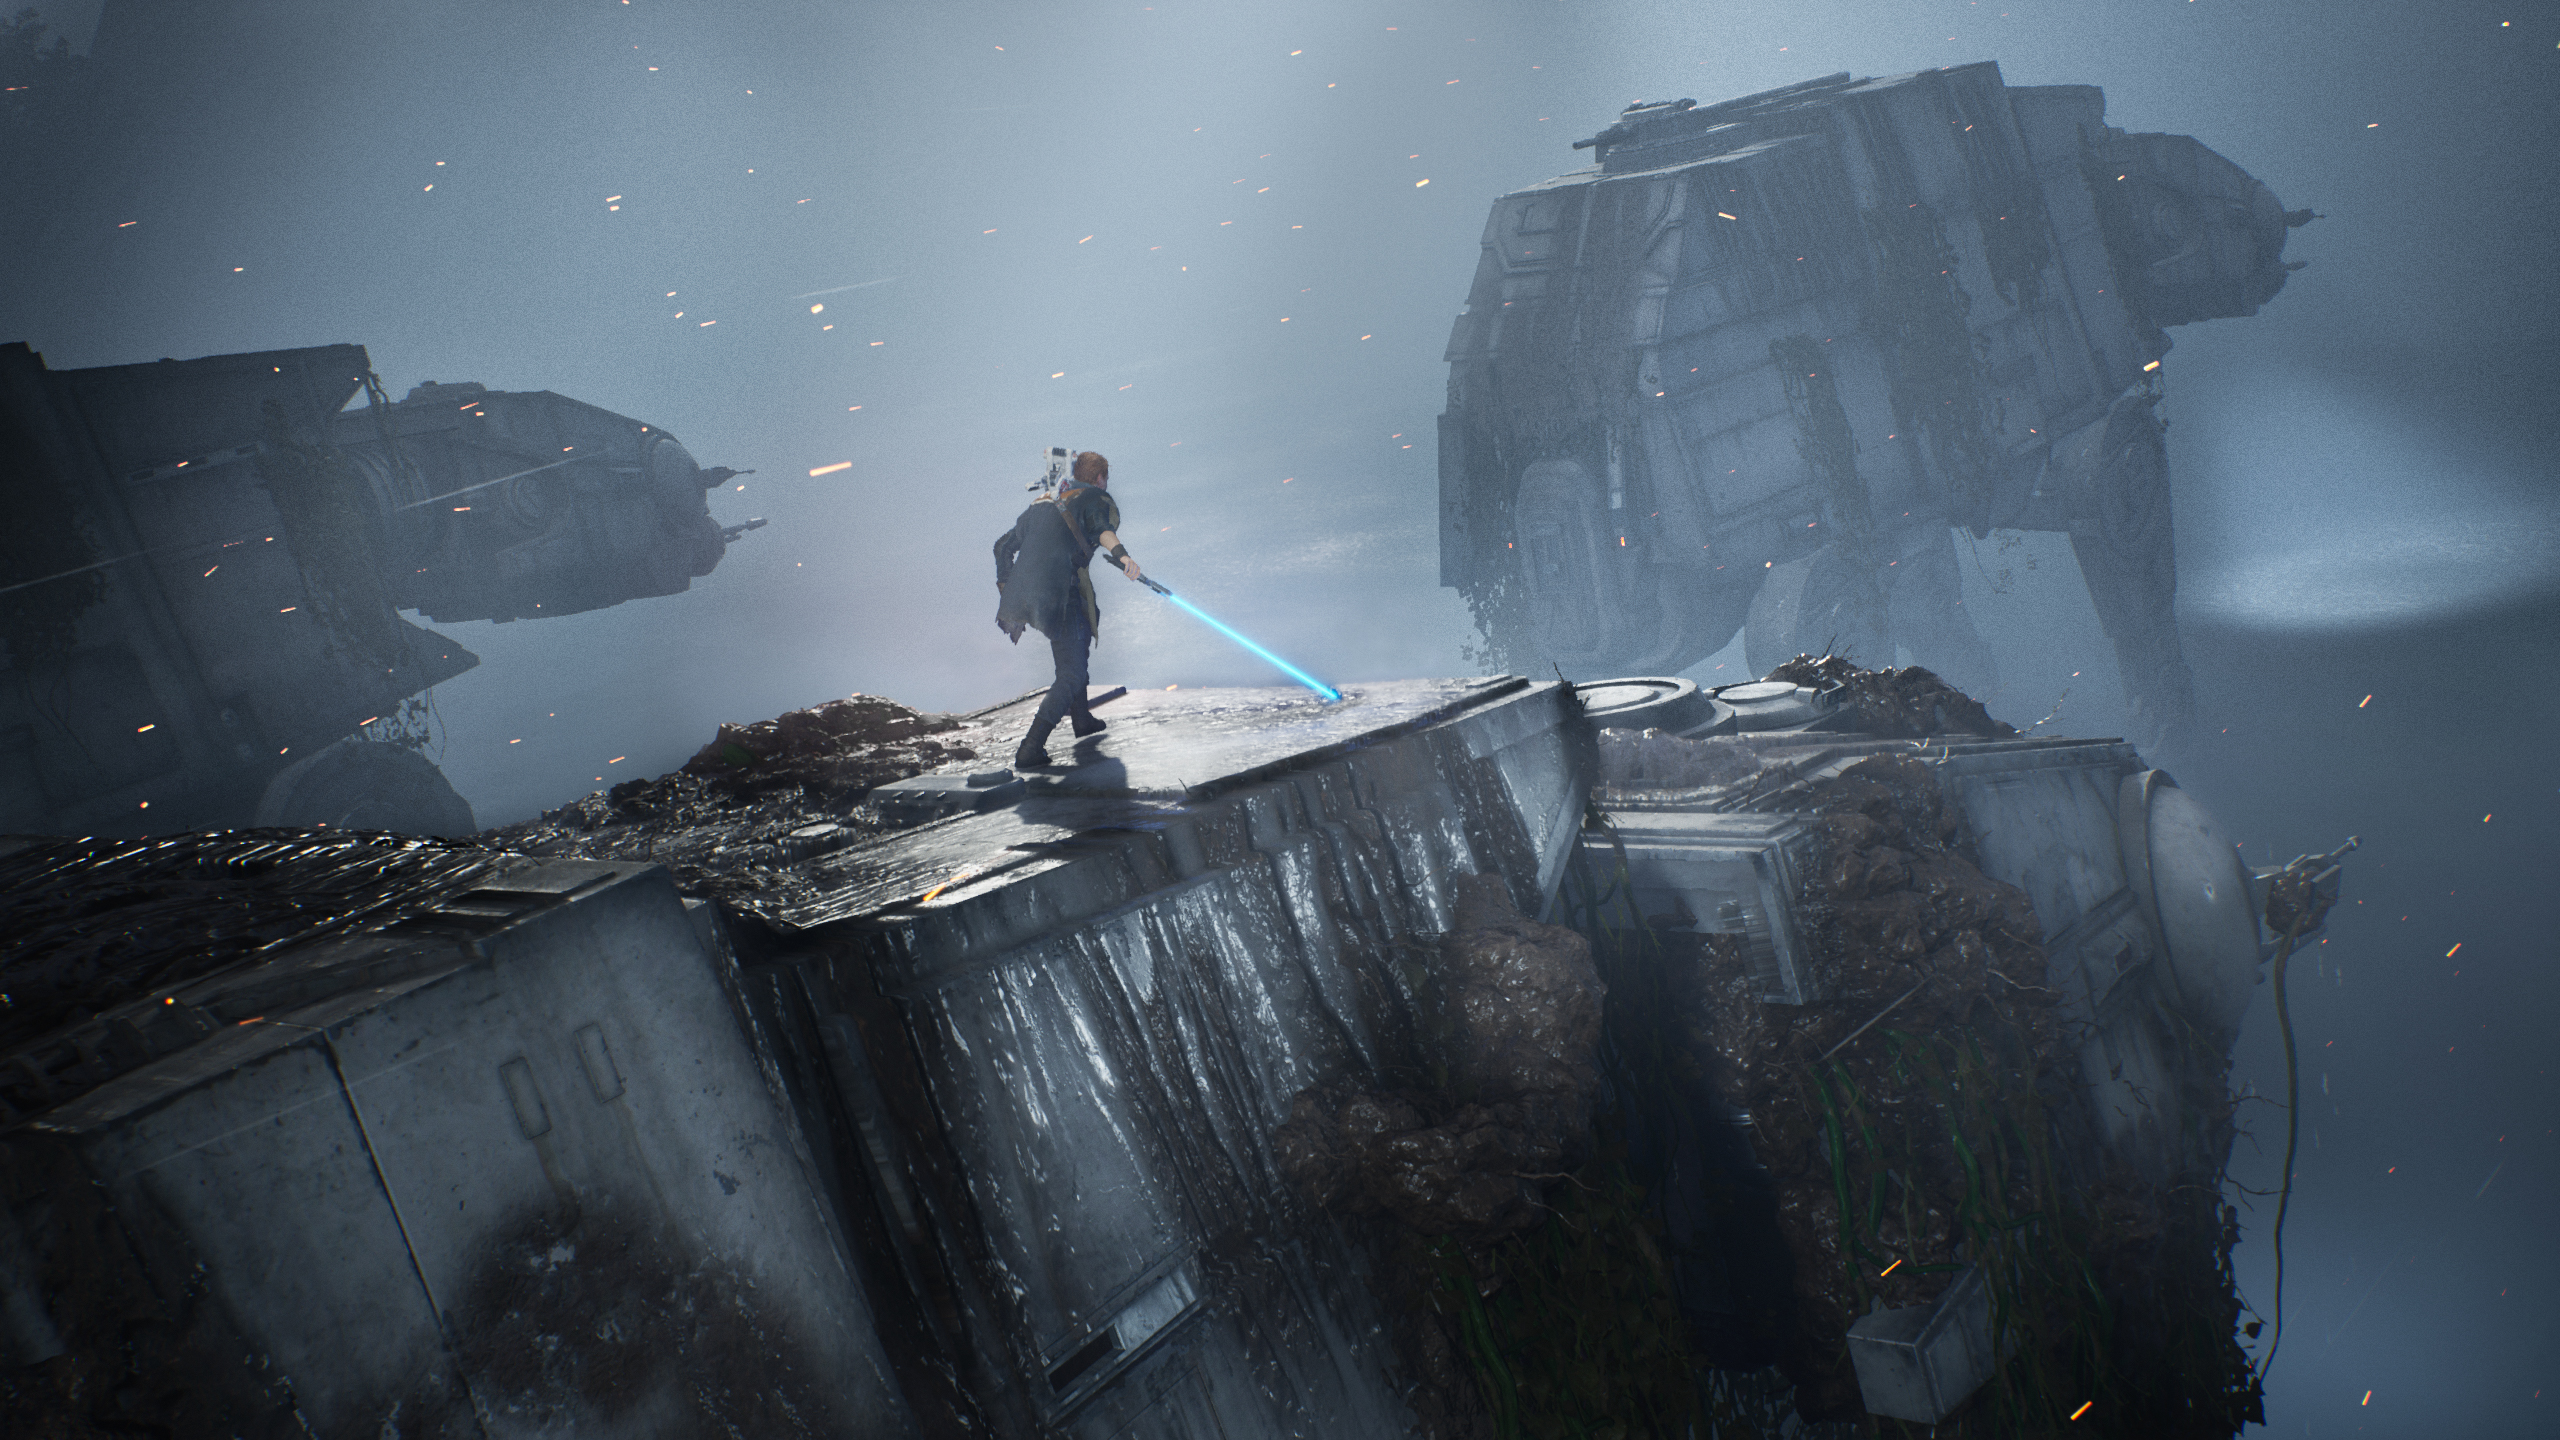 At At Walker Cal Kestis Lightsaber Star Wars Star Wars Jedi Fallen Order 2560x1440